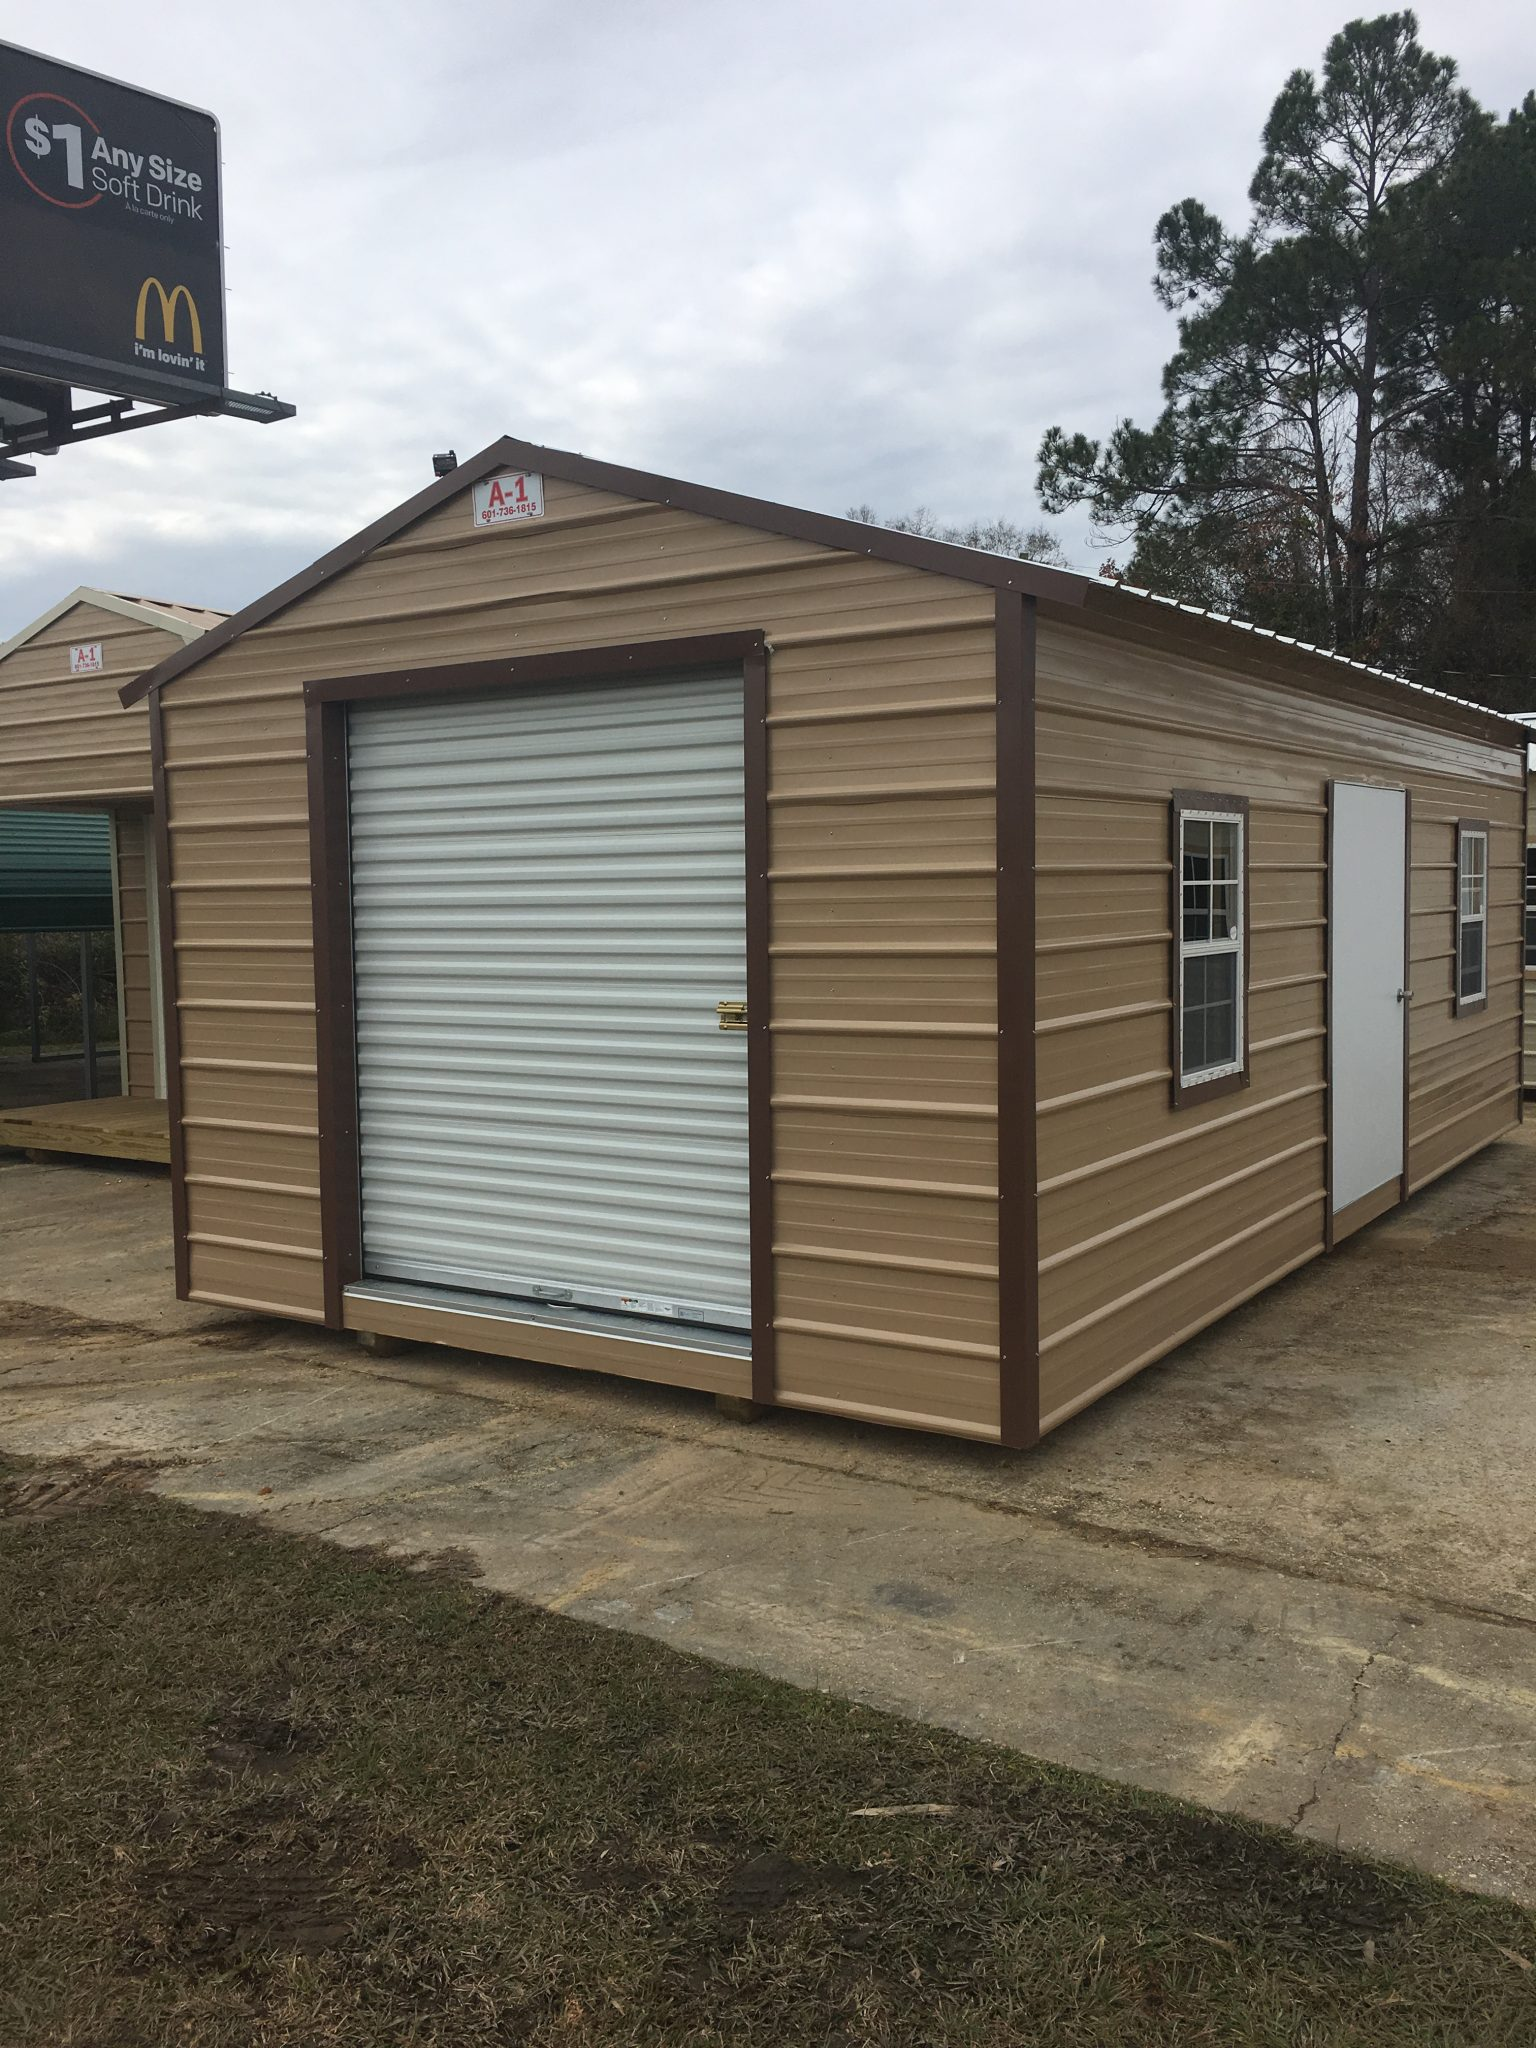 Sheds - Portable Storage Buildings | Hattiesburg, Columbia, Jackson